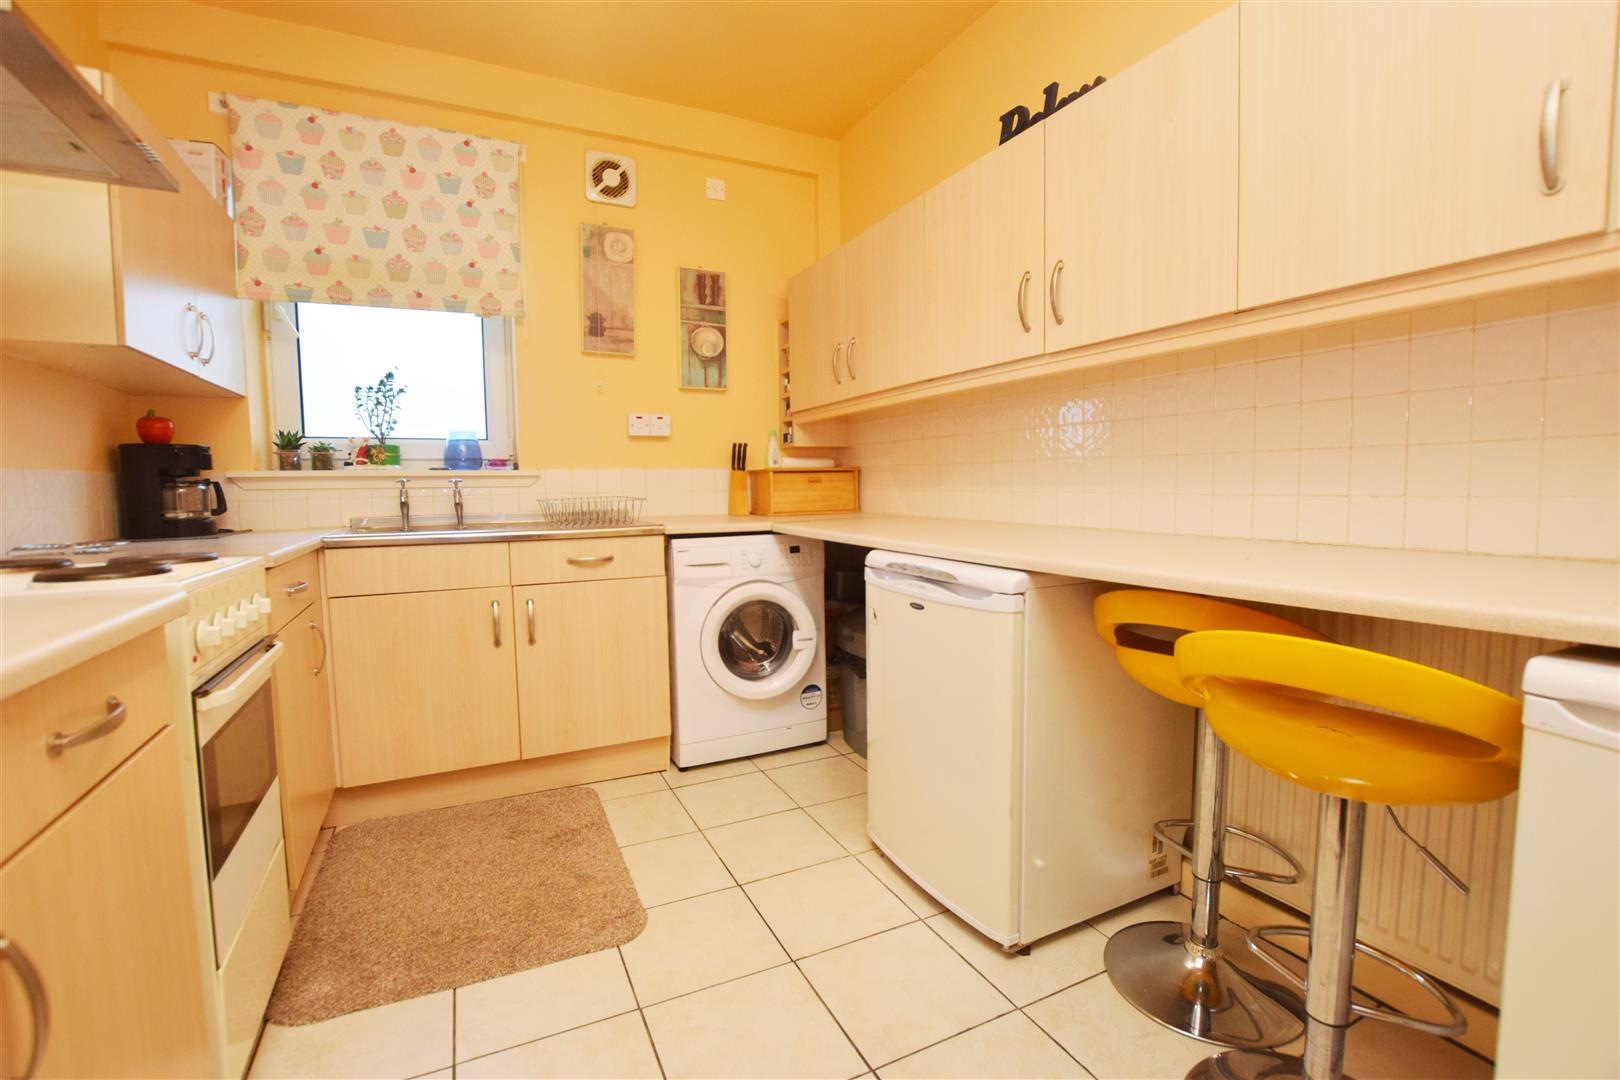 62C, Carnegie Place, Perth, Perthshire, PH1 5ED, UK